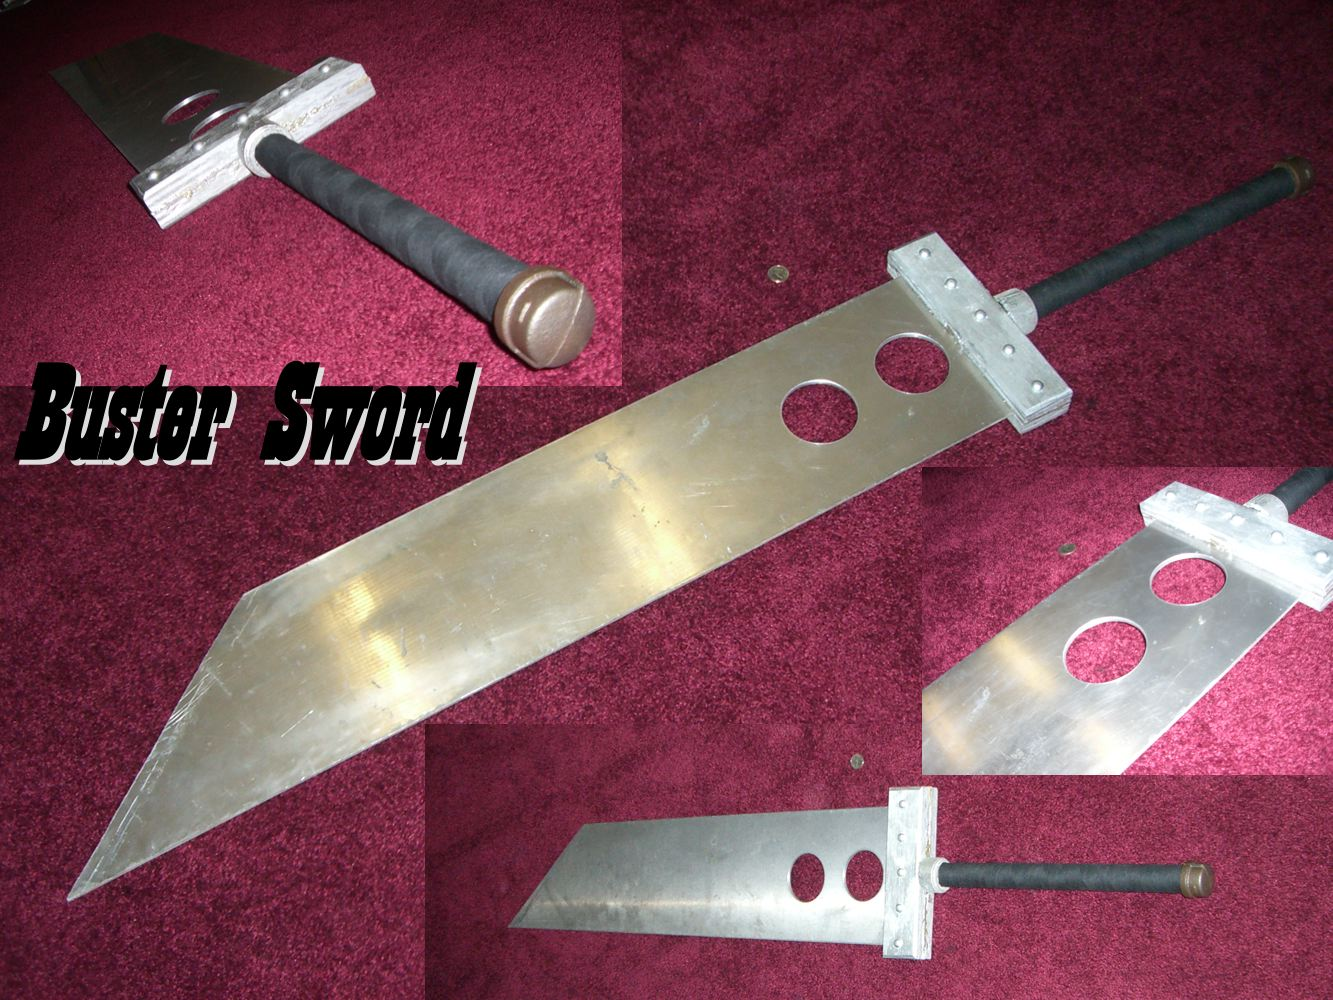 Real Buster Sword Buster Sword by Dinodude73